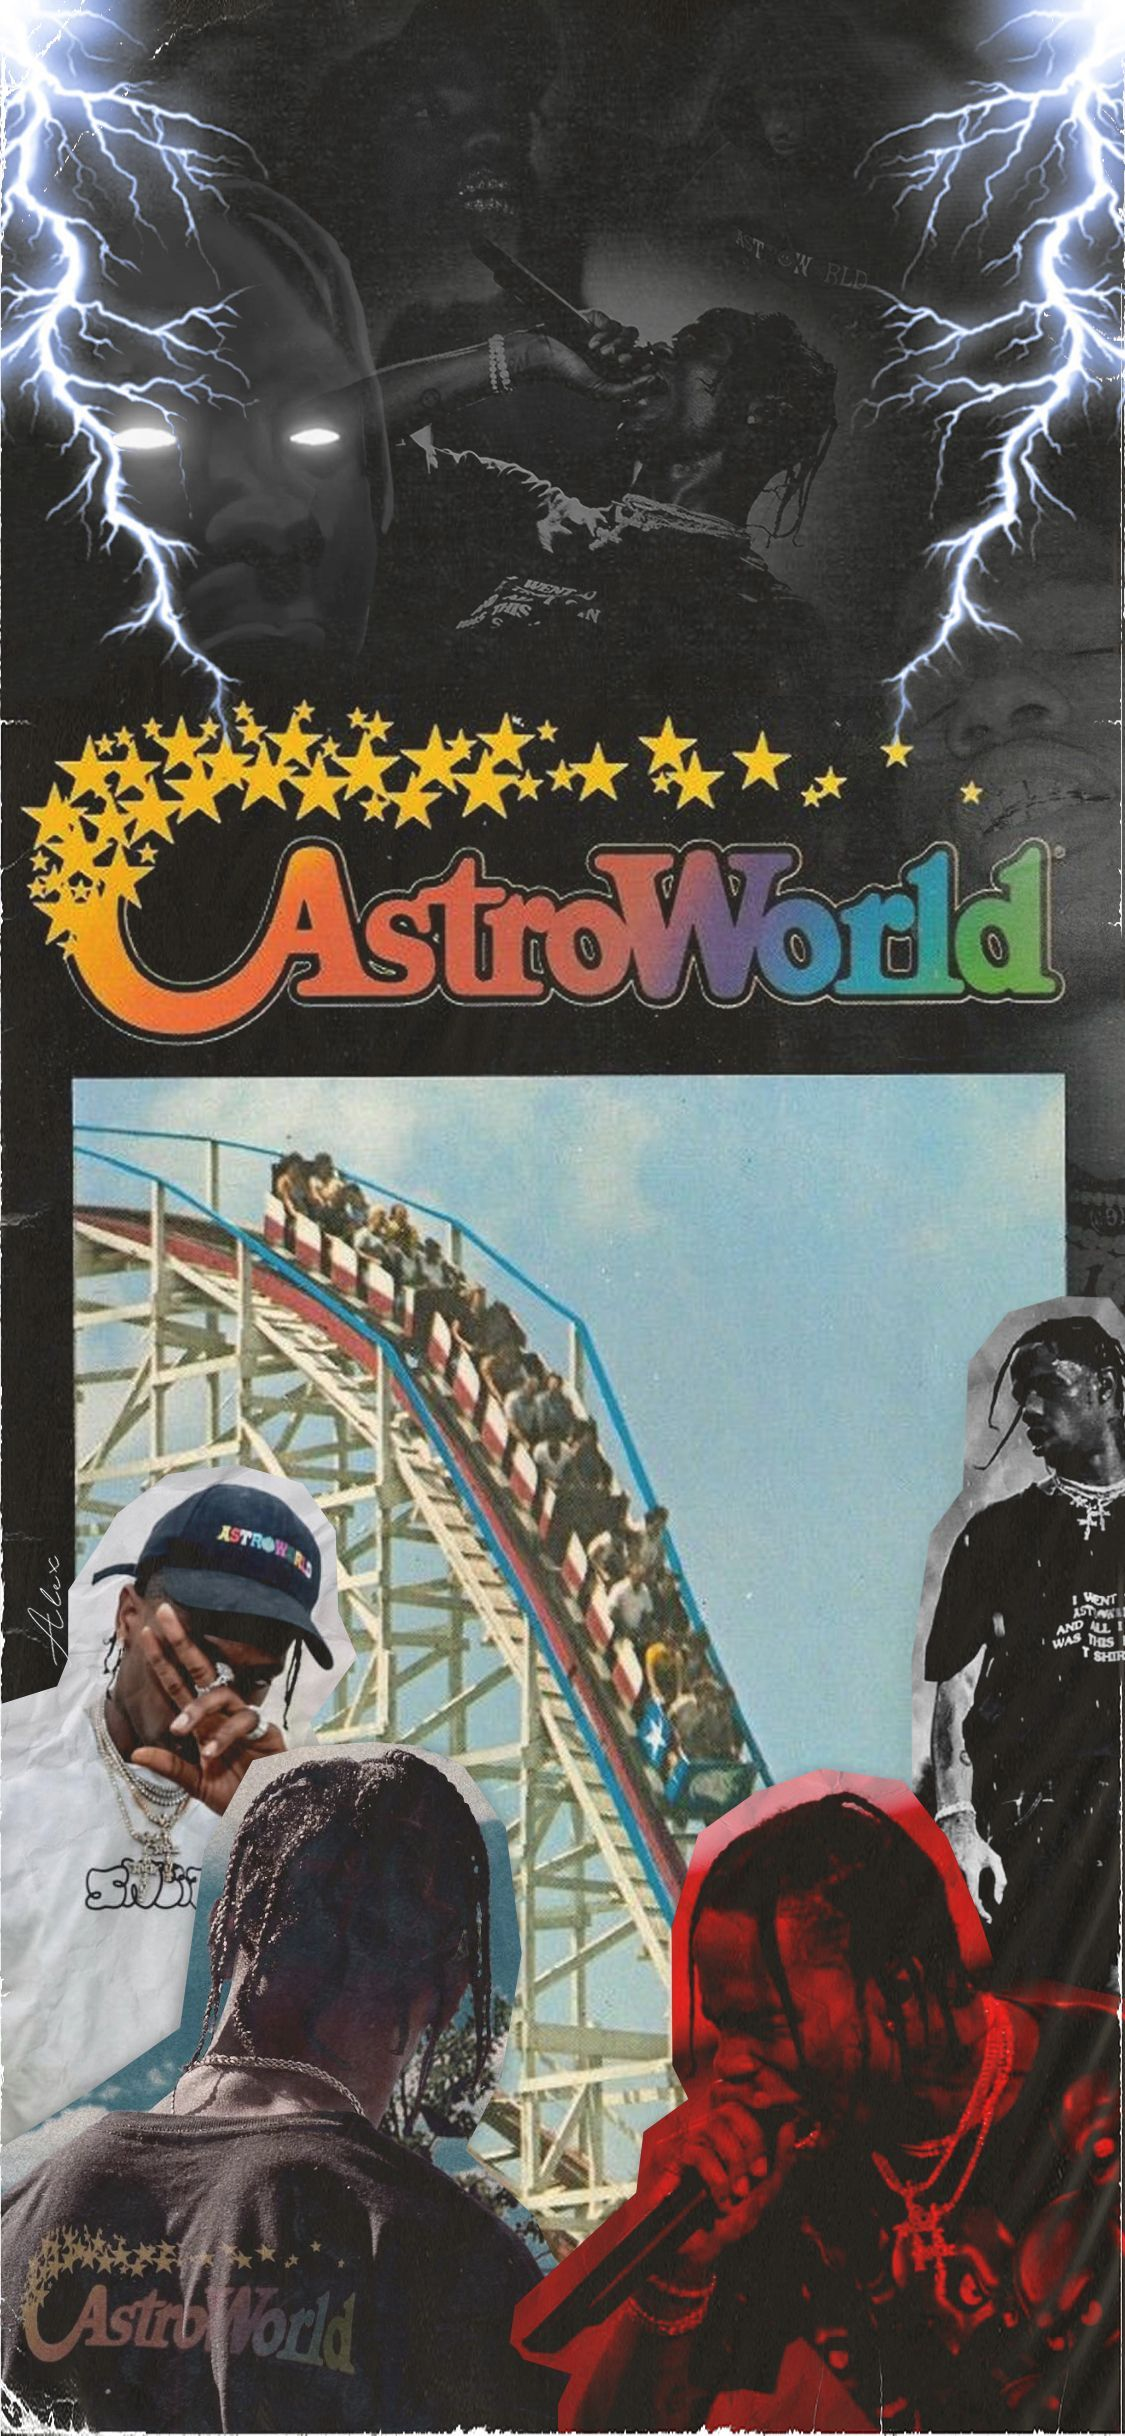 Travis Scott Astroworld Iphone Wallpaper Travisscottwallpapers Travis Scott Ast Travis Scott Wallpapers Travis Scott Iphone Wallpaper Iphone Wallpaper Vintage